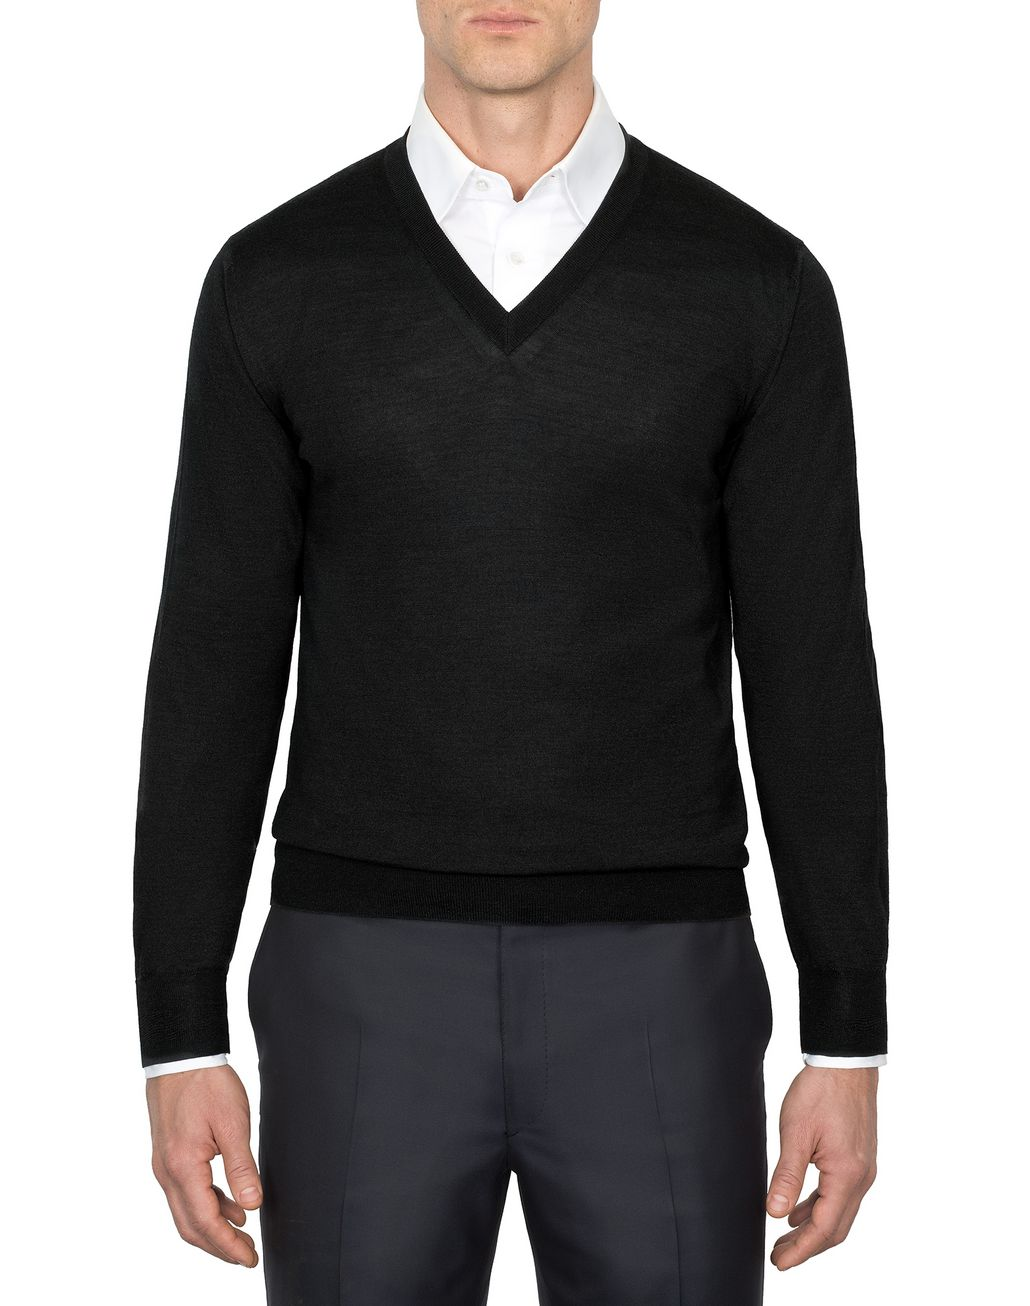 BRIONI 'Essential' Black V-Neck Sweater Knitwear Man r